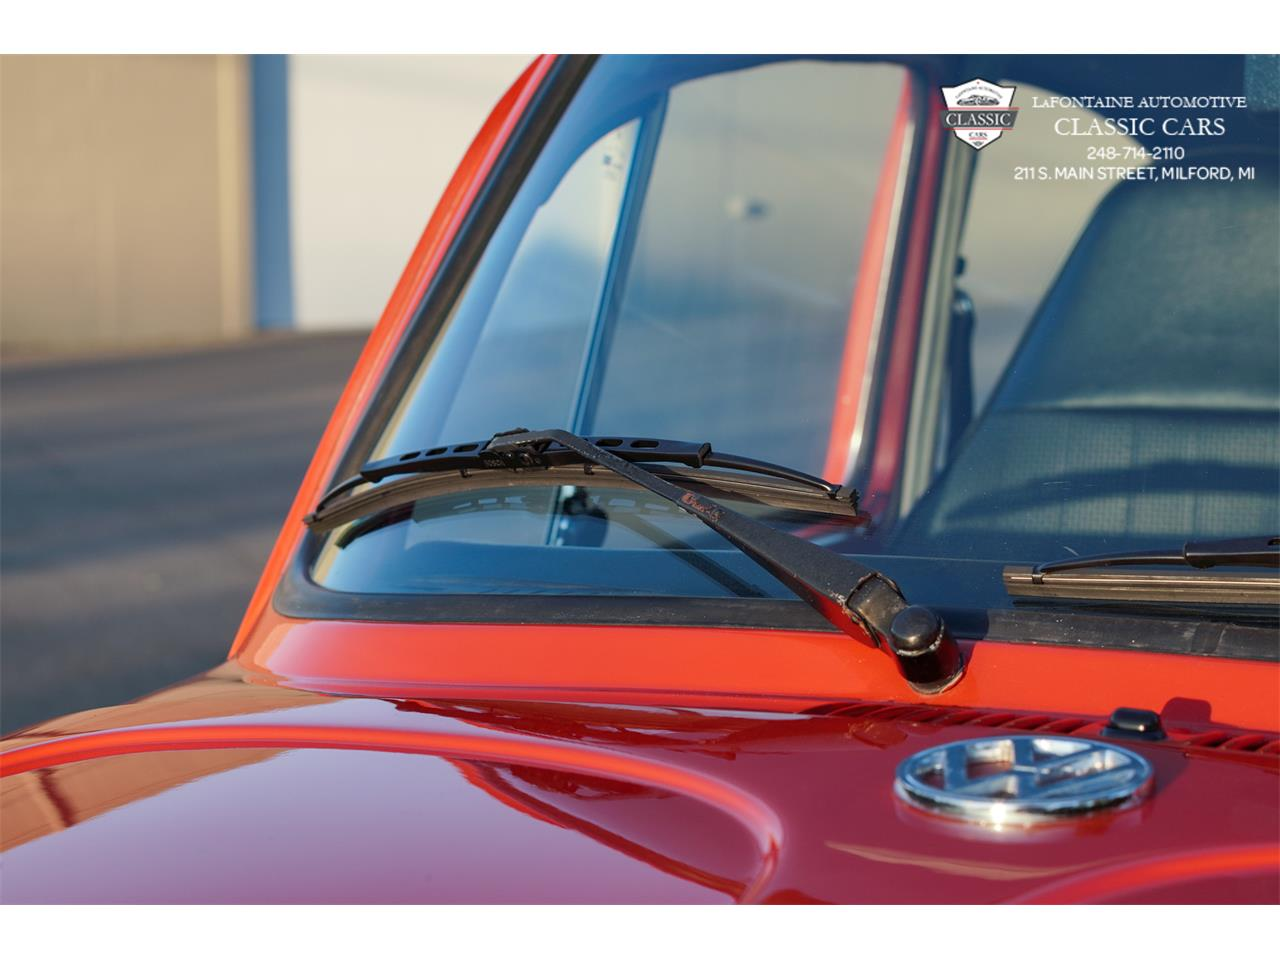 1973 Volkswagen Beetle (CC-1420631) for sale in Milford, Michigan